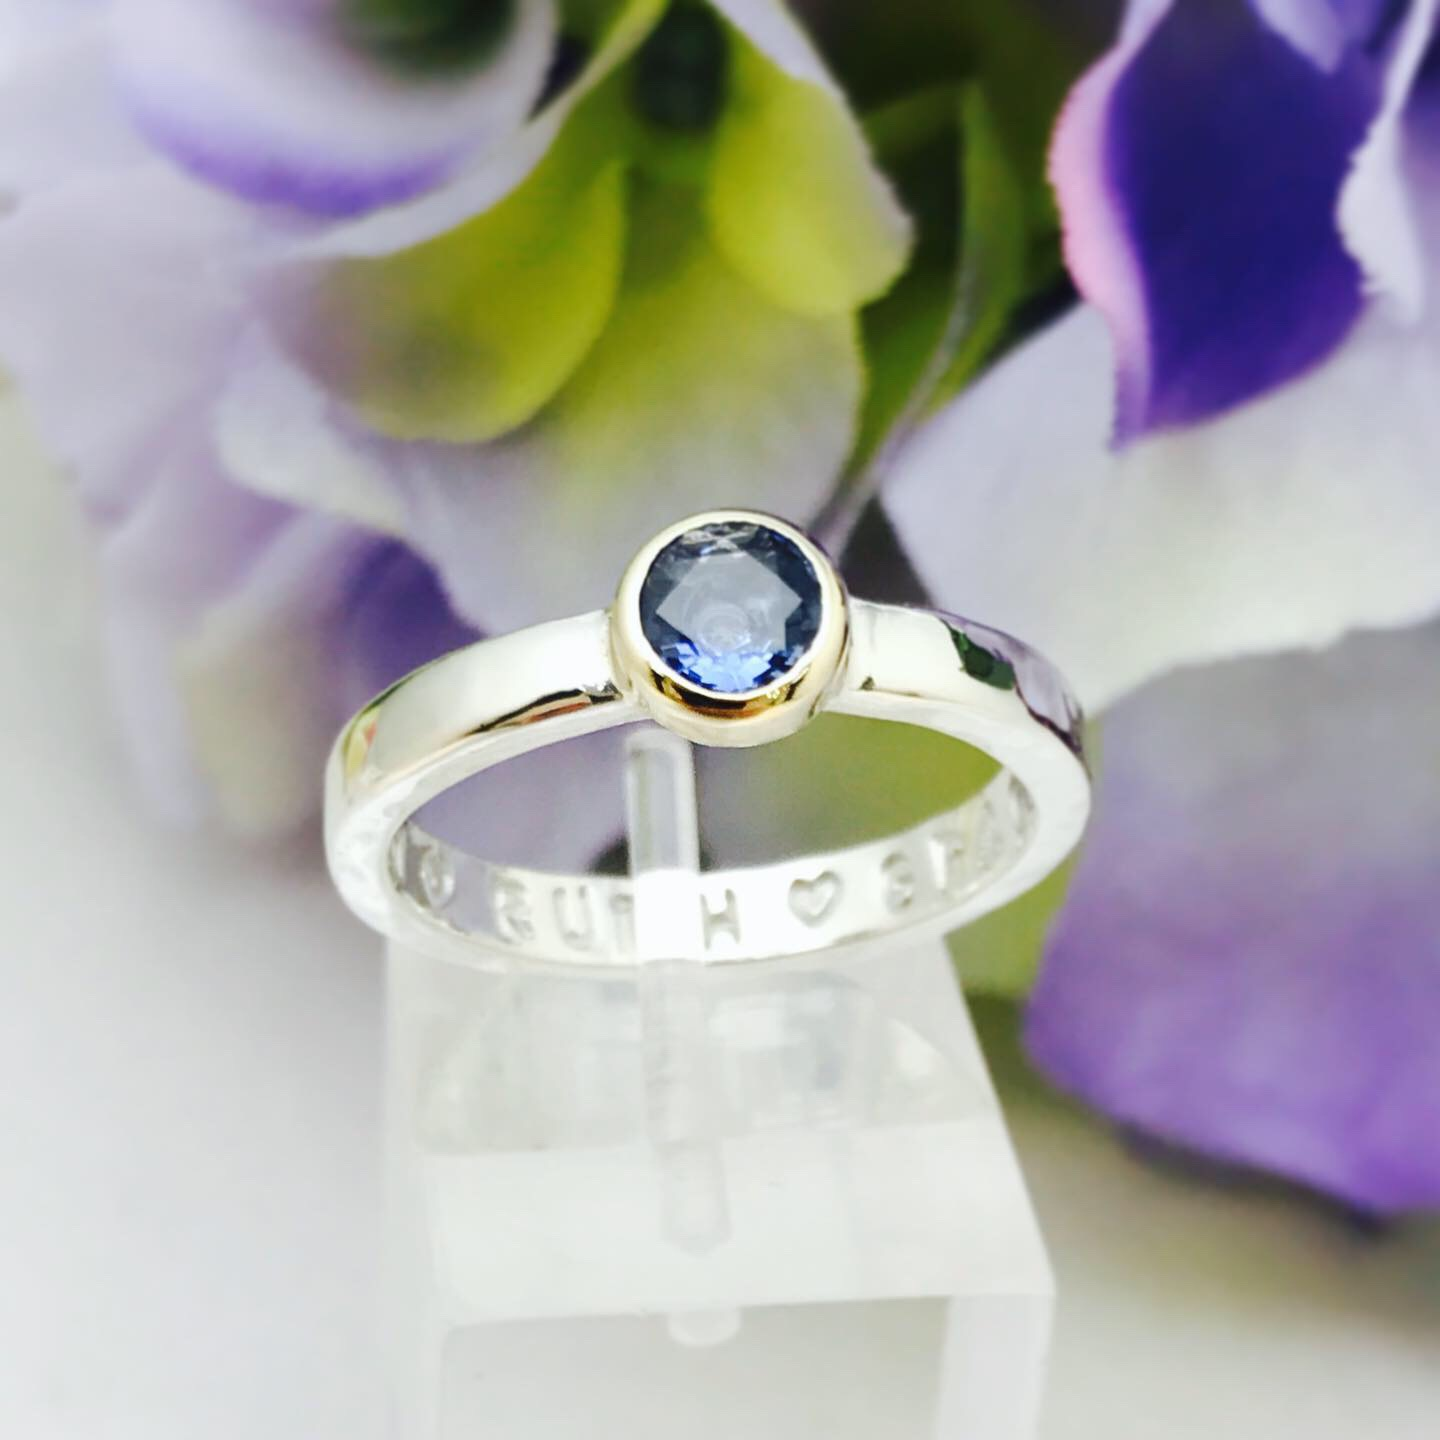 Bespoke Yellow Gold Set Sapphire Love Prevails Ring - personalised